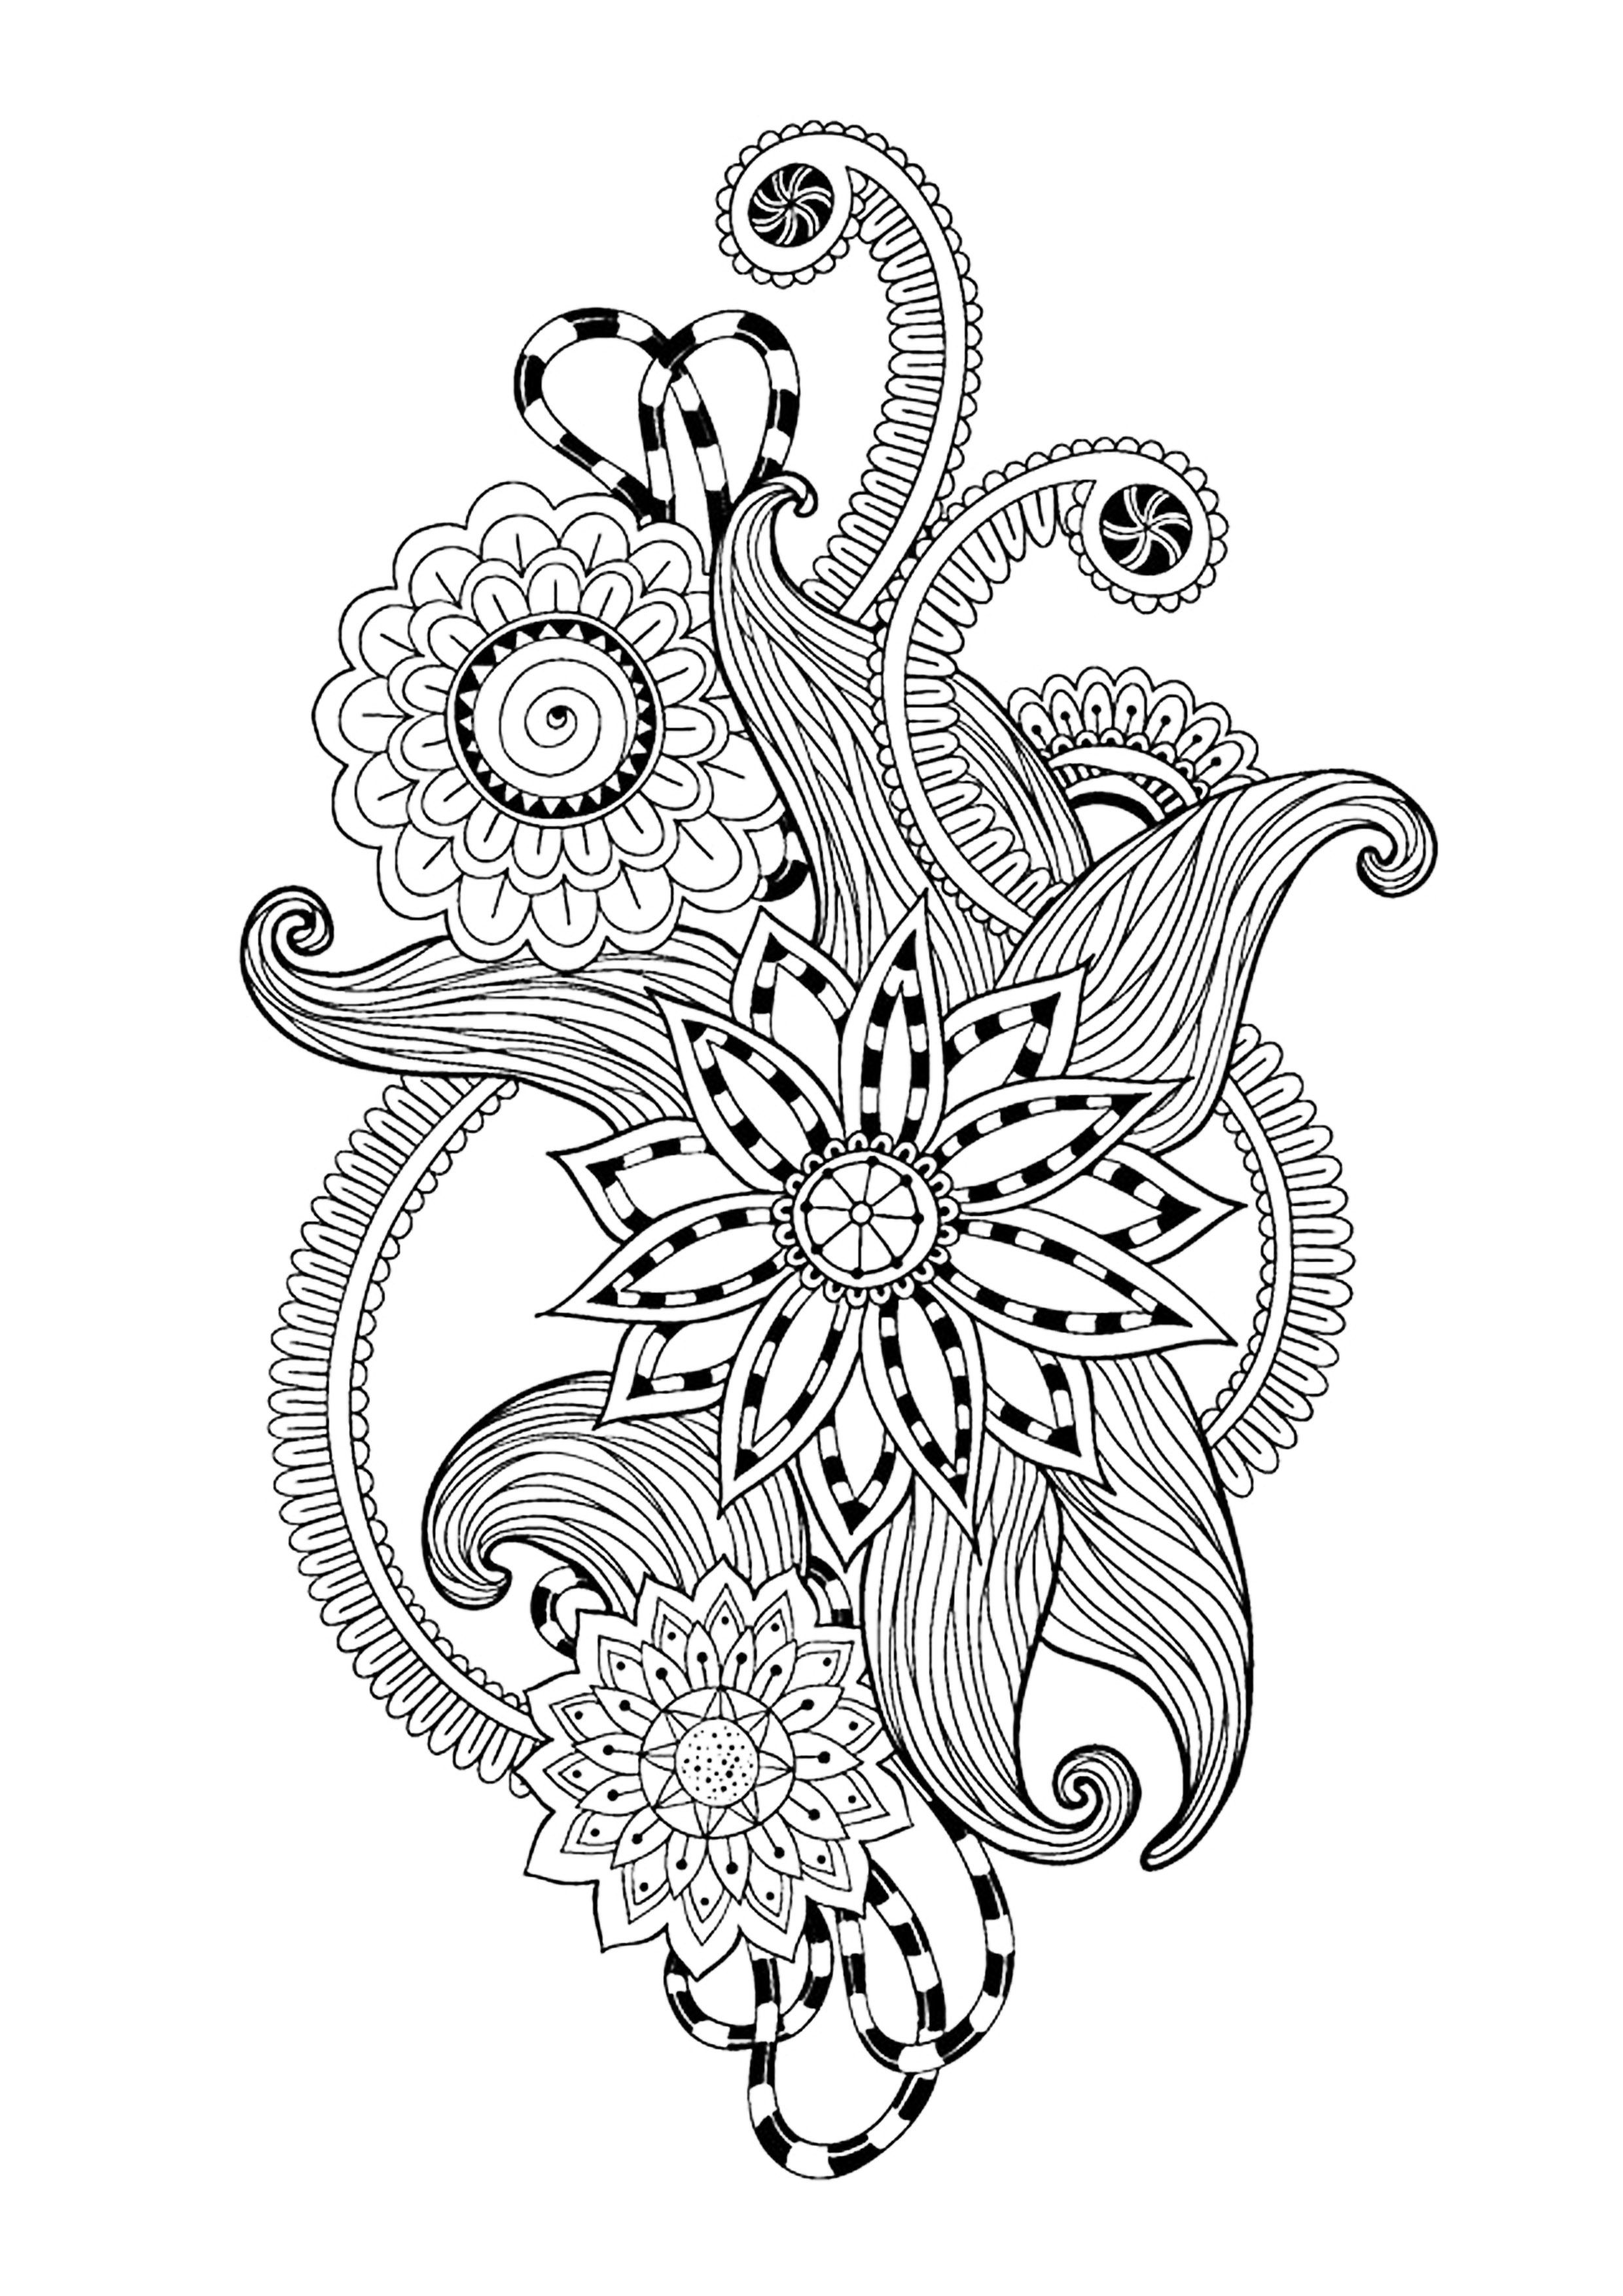 Free coloring page coloring-zen-antistress-abstract-pattern-inspired ...